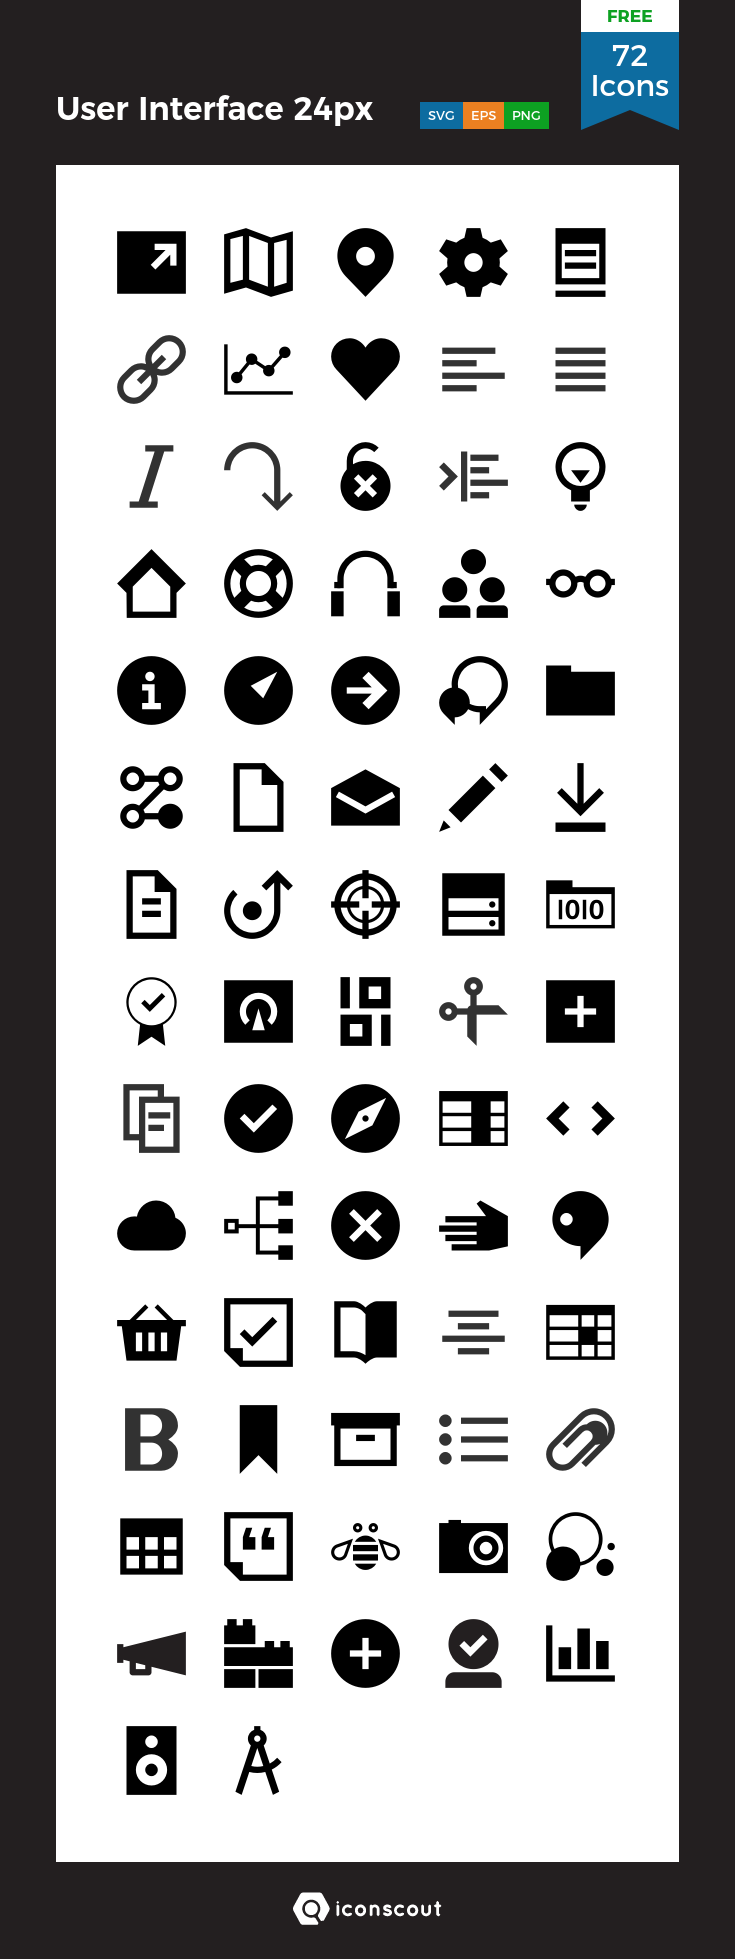 Download Download User Interface 24px Icon pack - Available in SVG ...